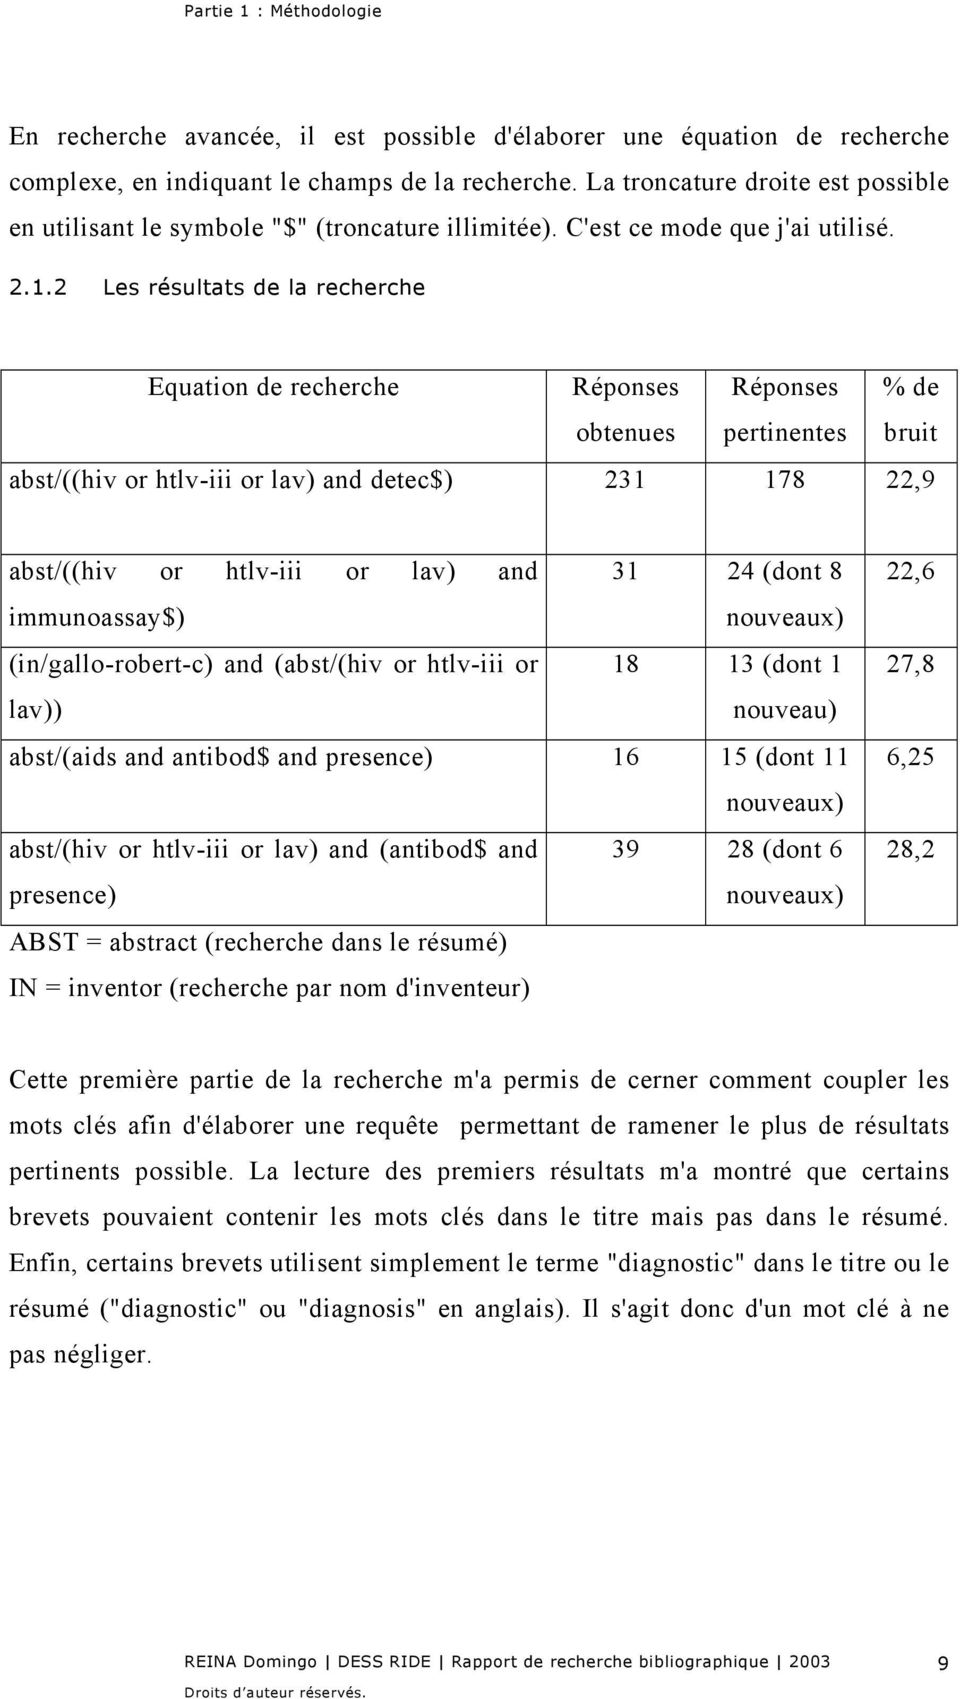 2 Les résultats de la recherche Equation de recherche Réponses Réponses % de obtenues pertinentes bruit abst/((hiv or htlv-iii or lav) and detec$) 231 178 22,9 abst/((hiv or htlv-iii or lav) and 31